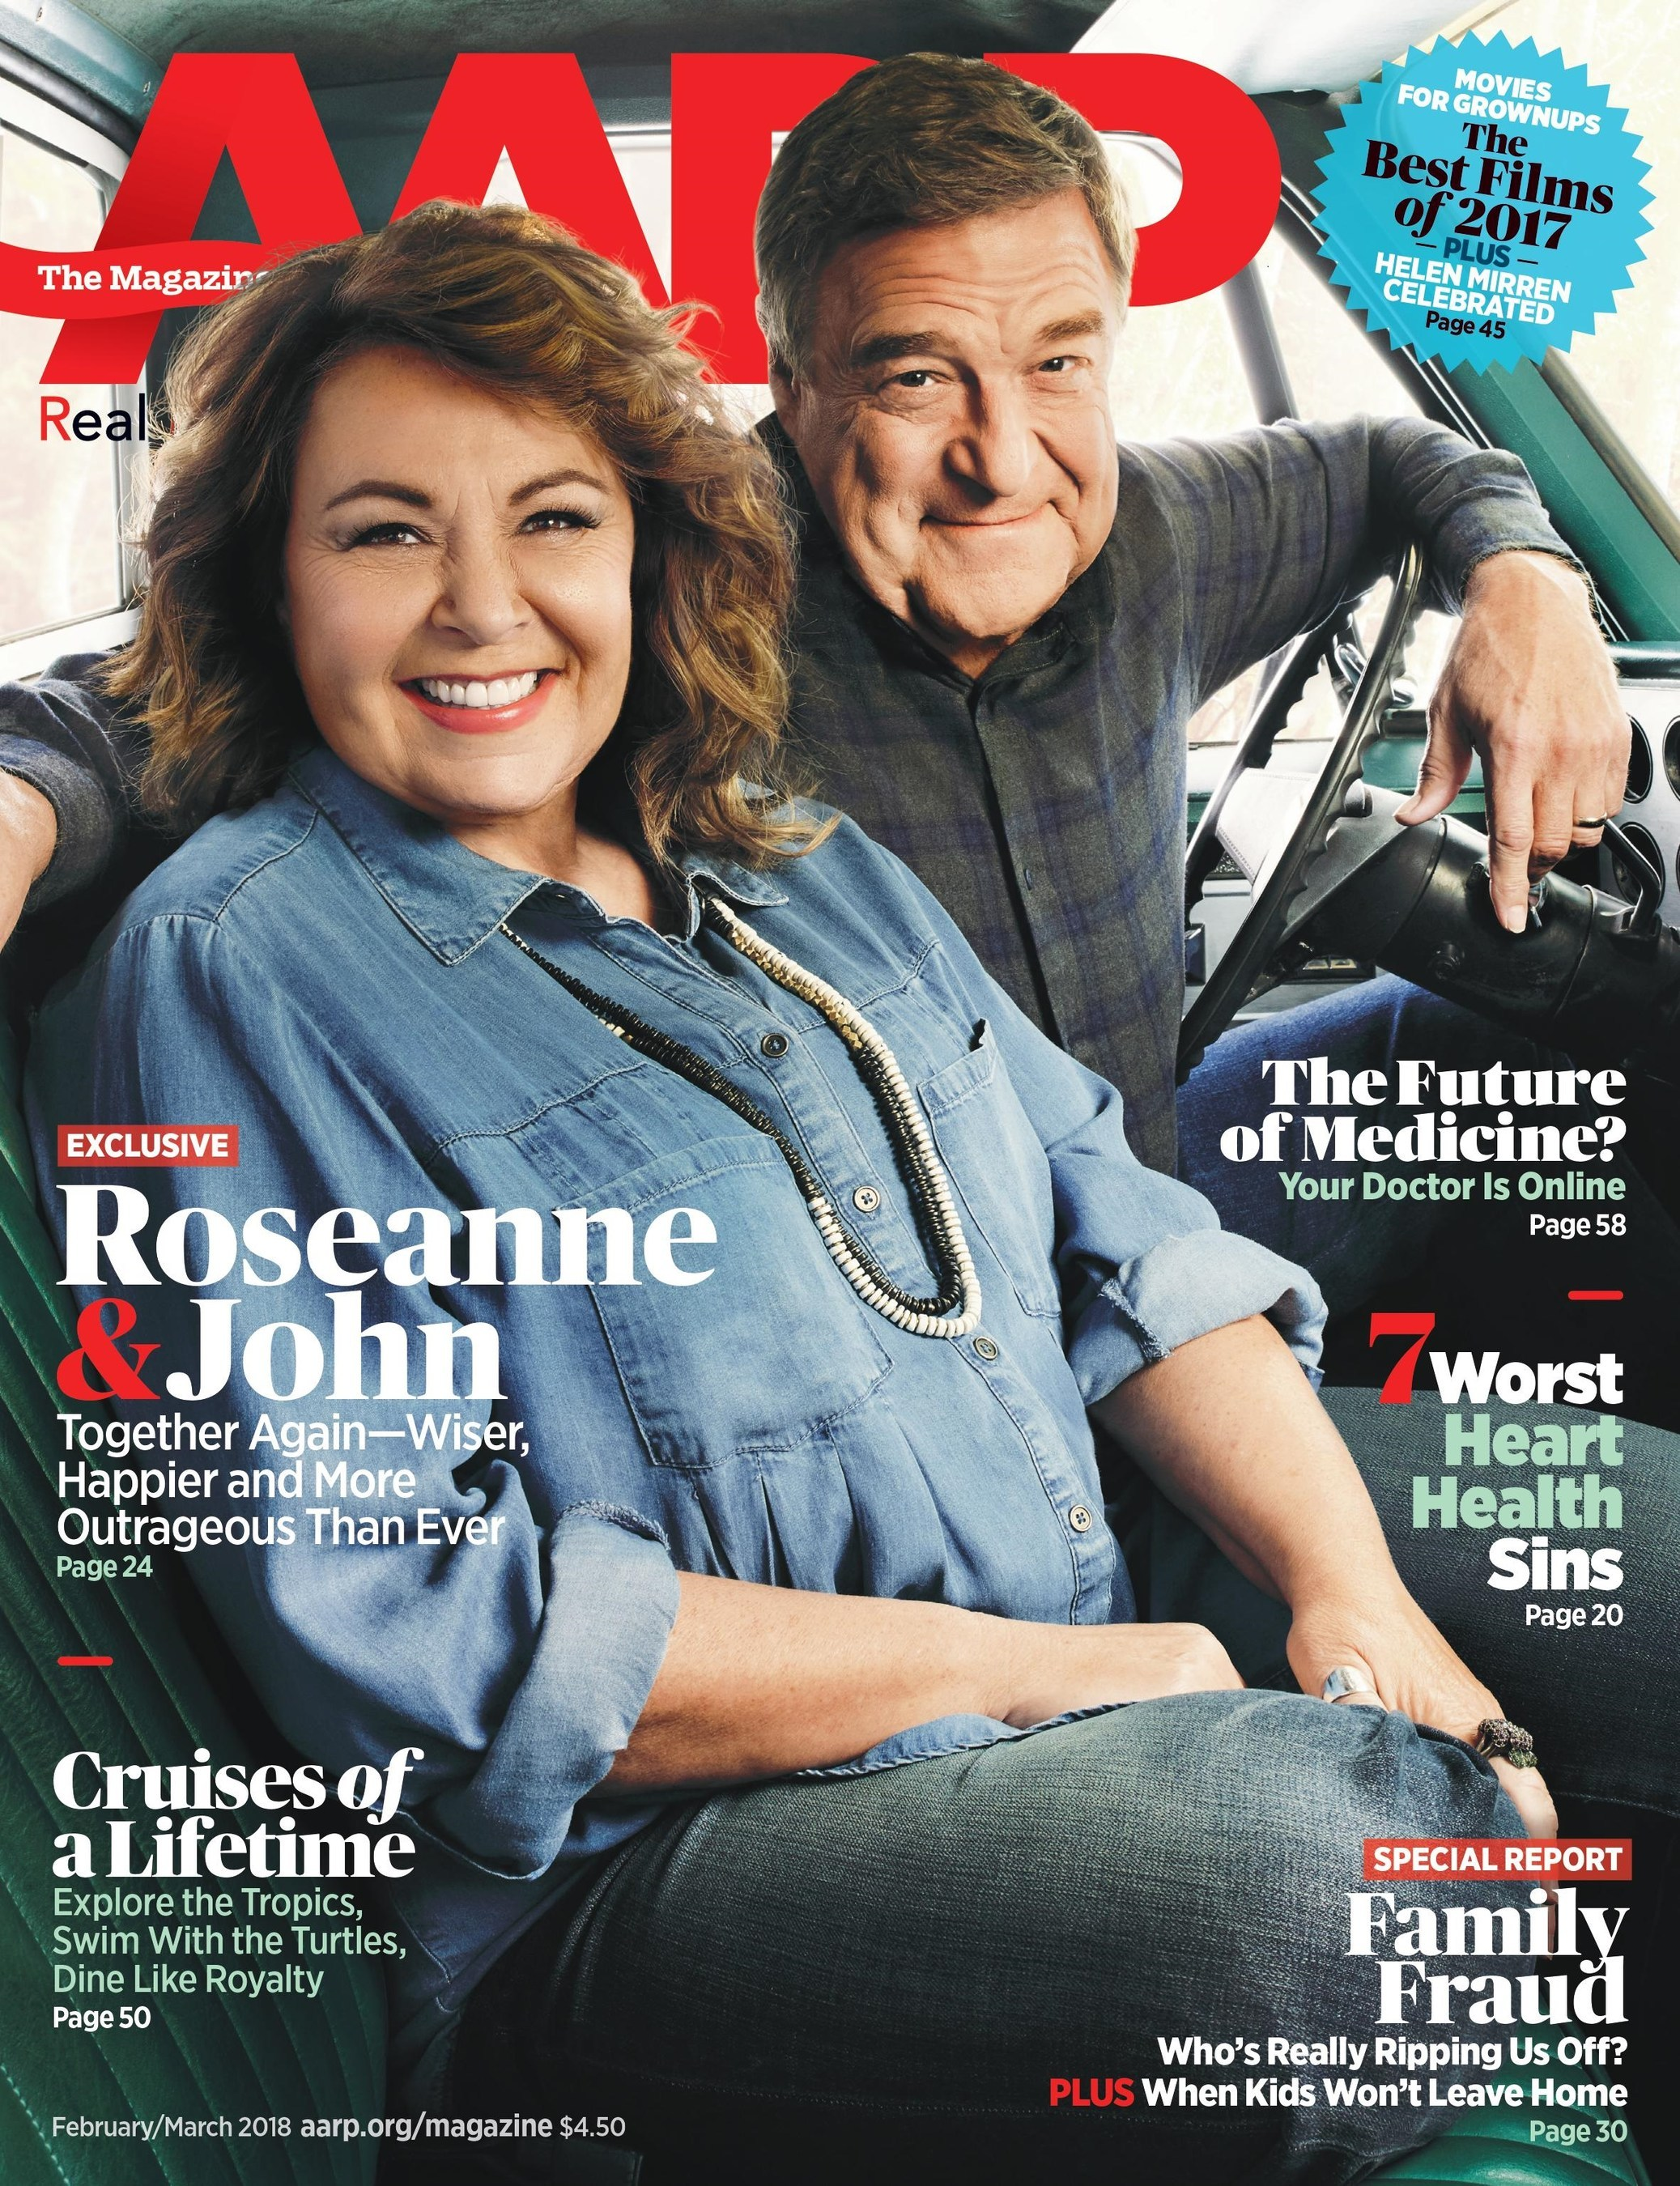 AARP magazine interview, roseanne barr and john goodman